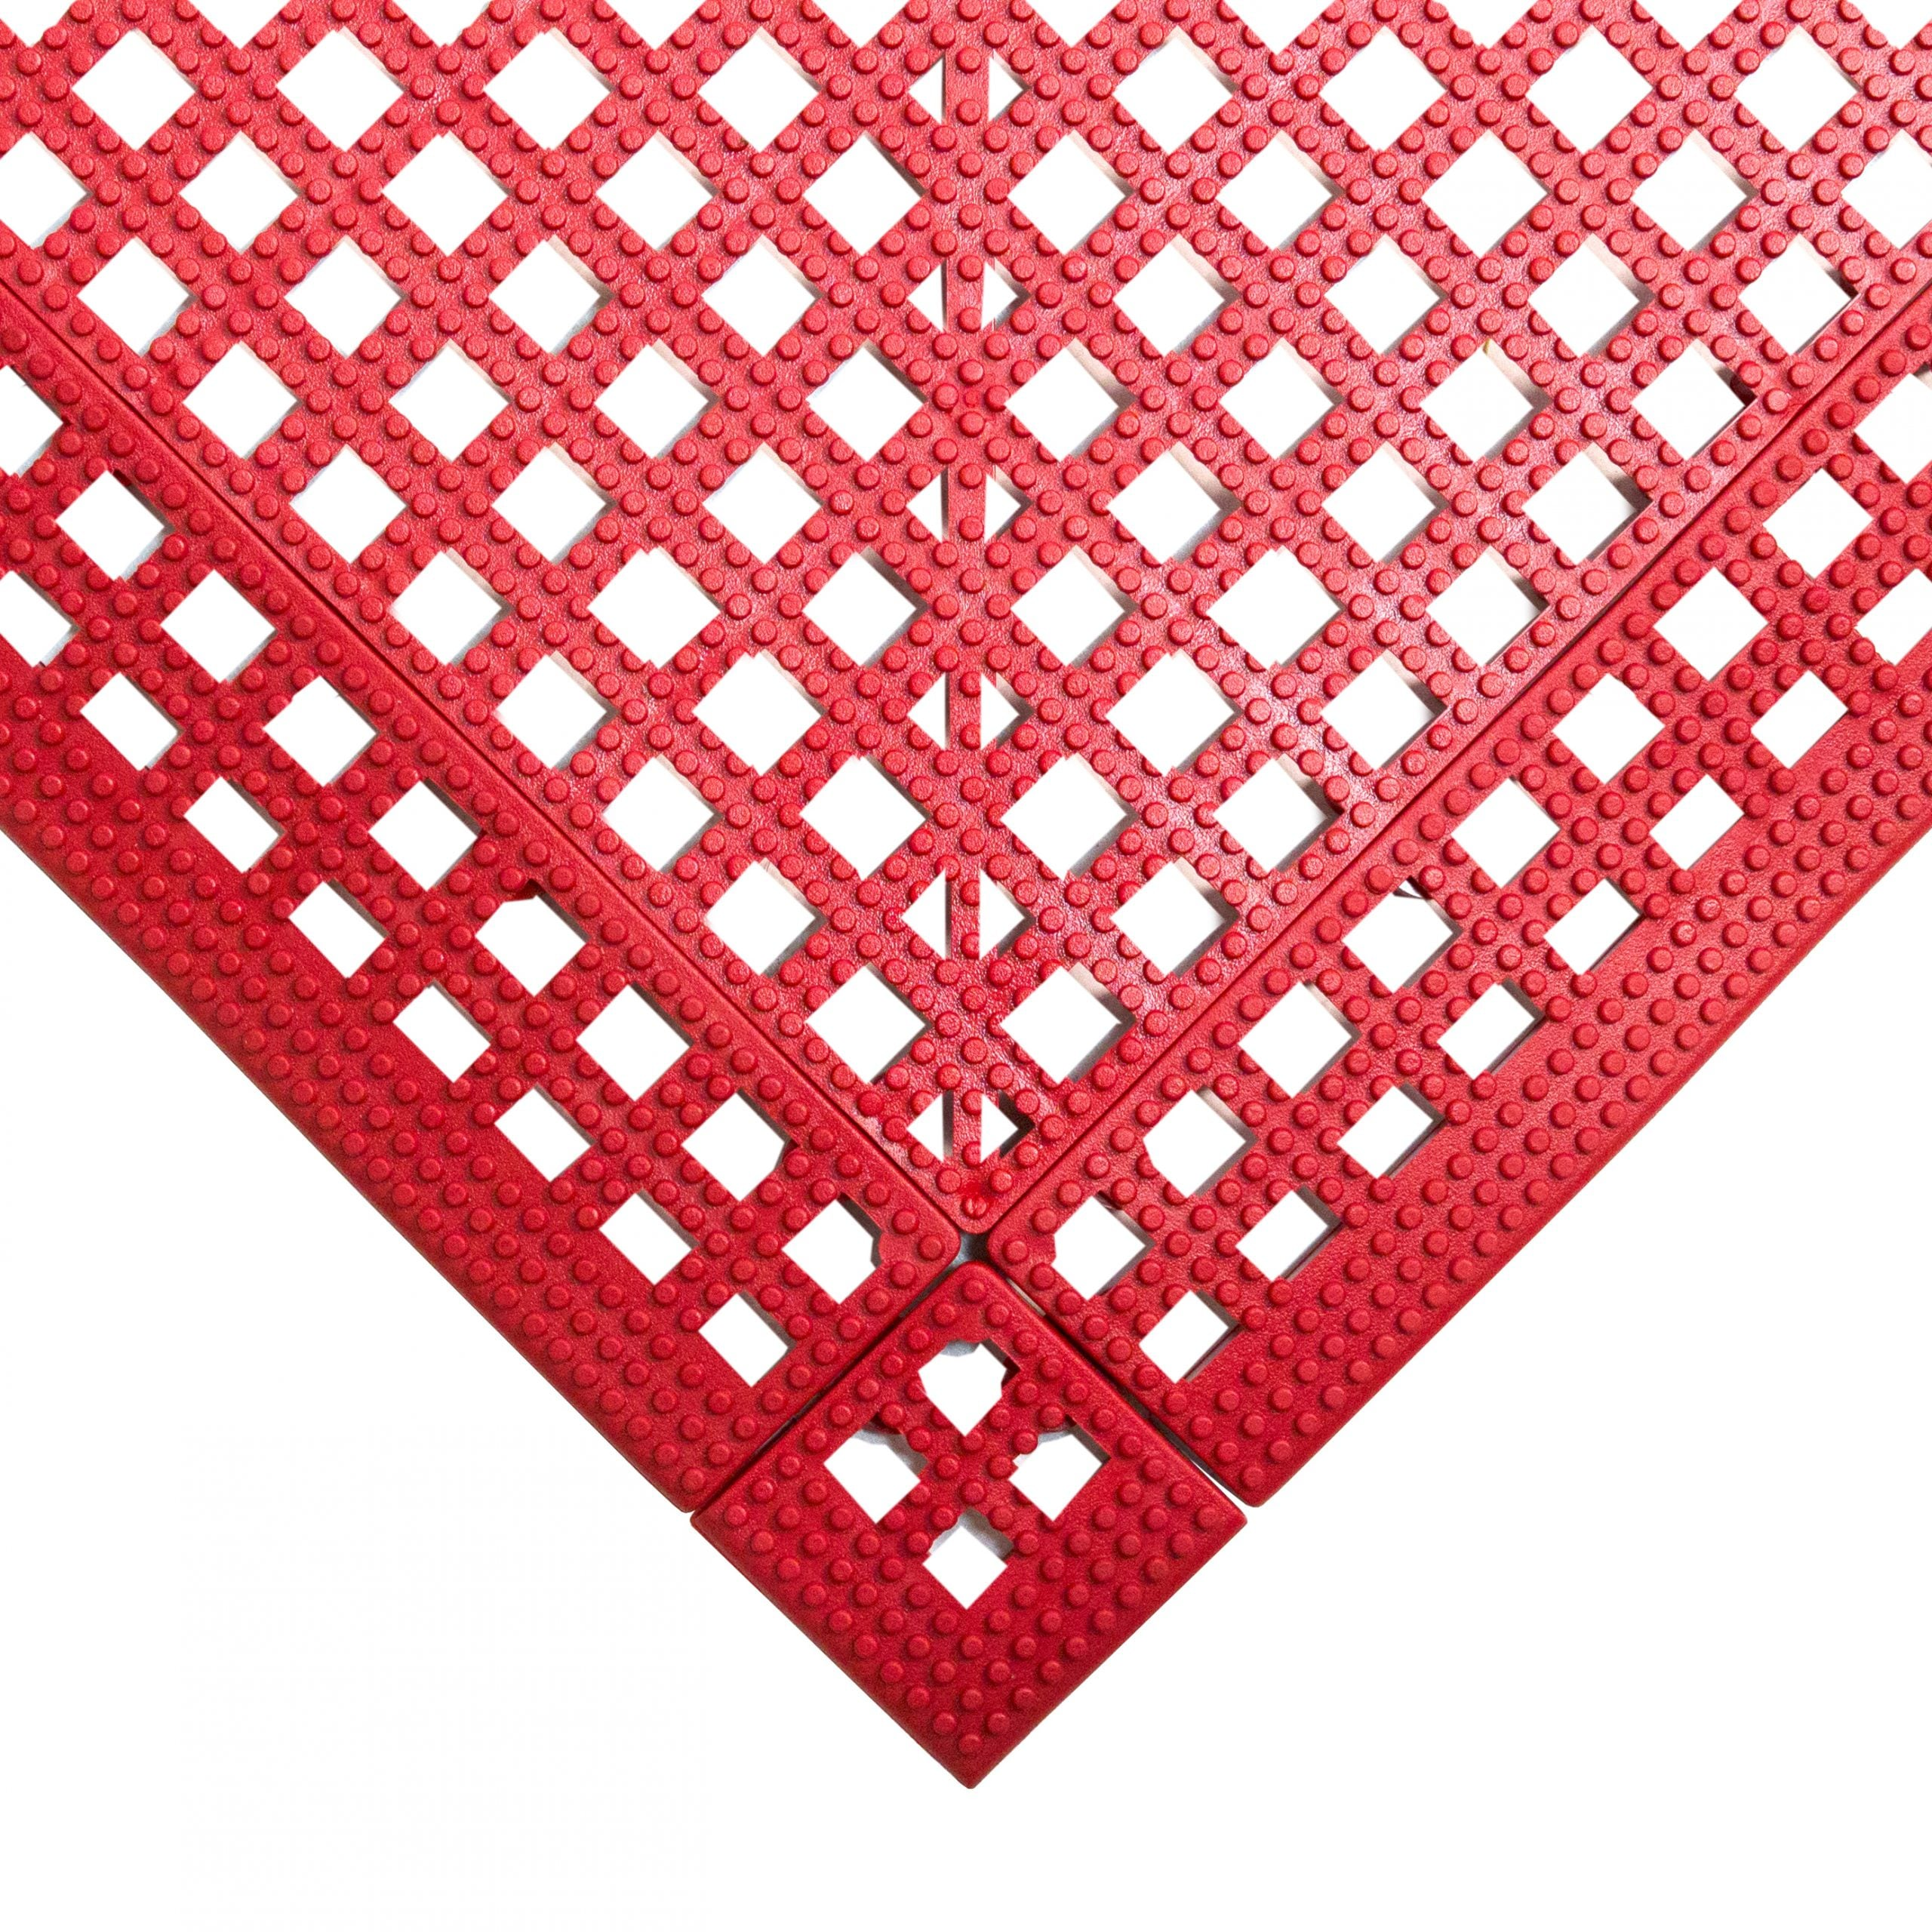 Flexi Deck Leisure Mat Style Red